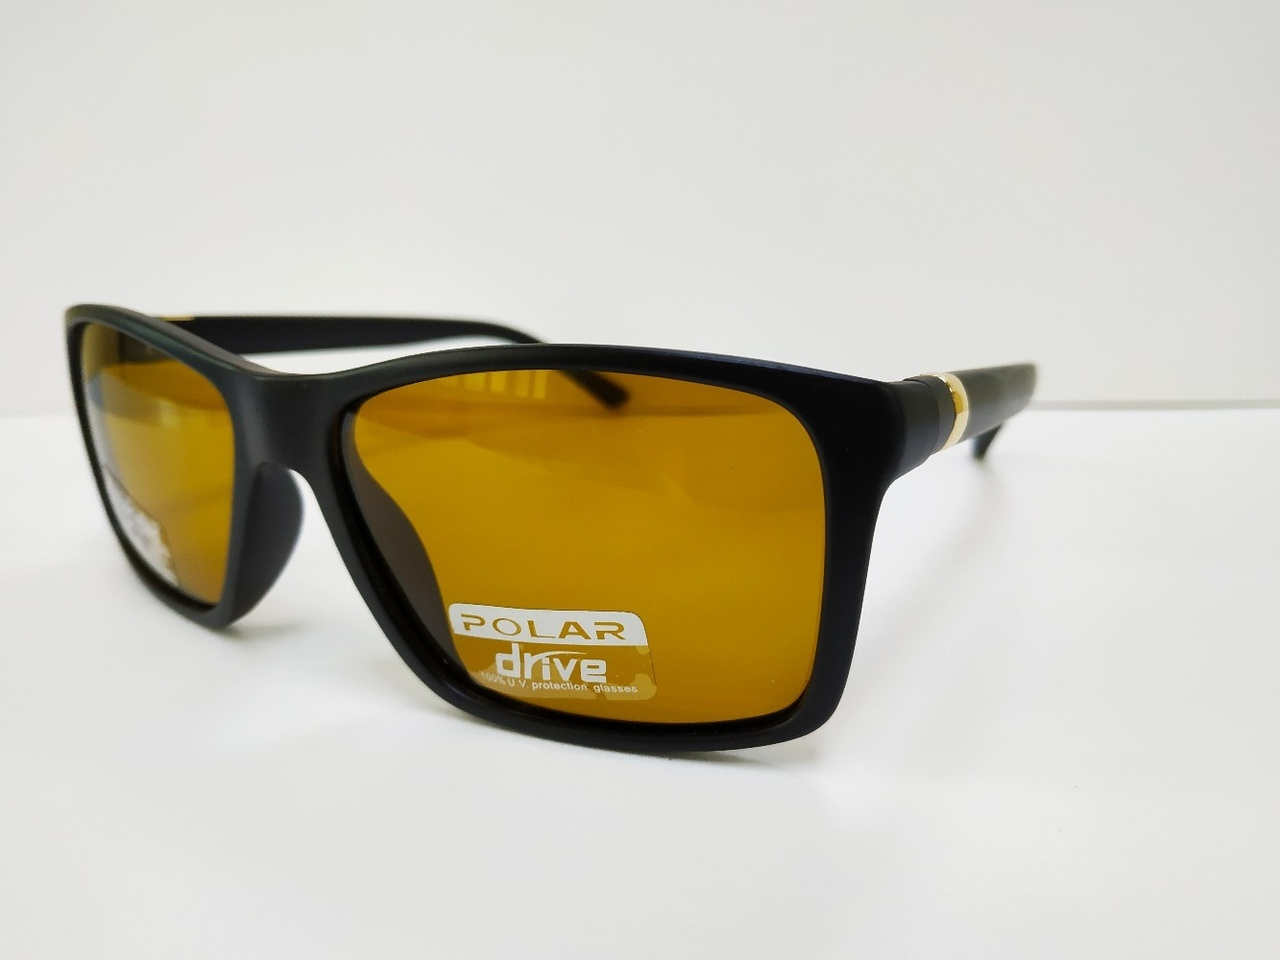 Polar Drive polarized<br>